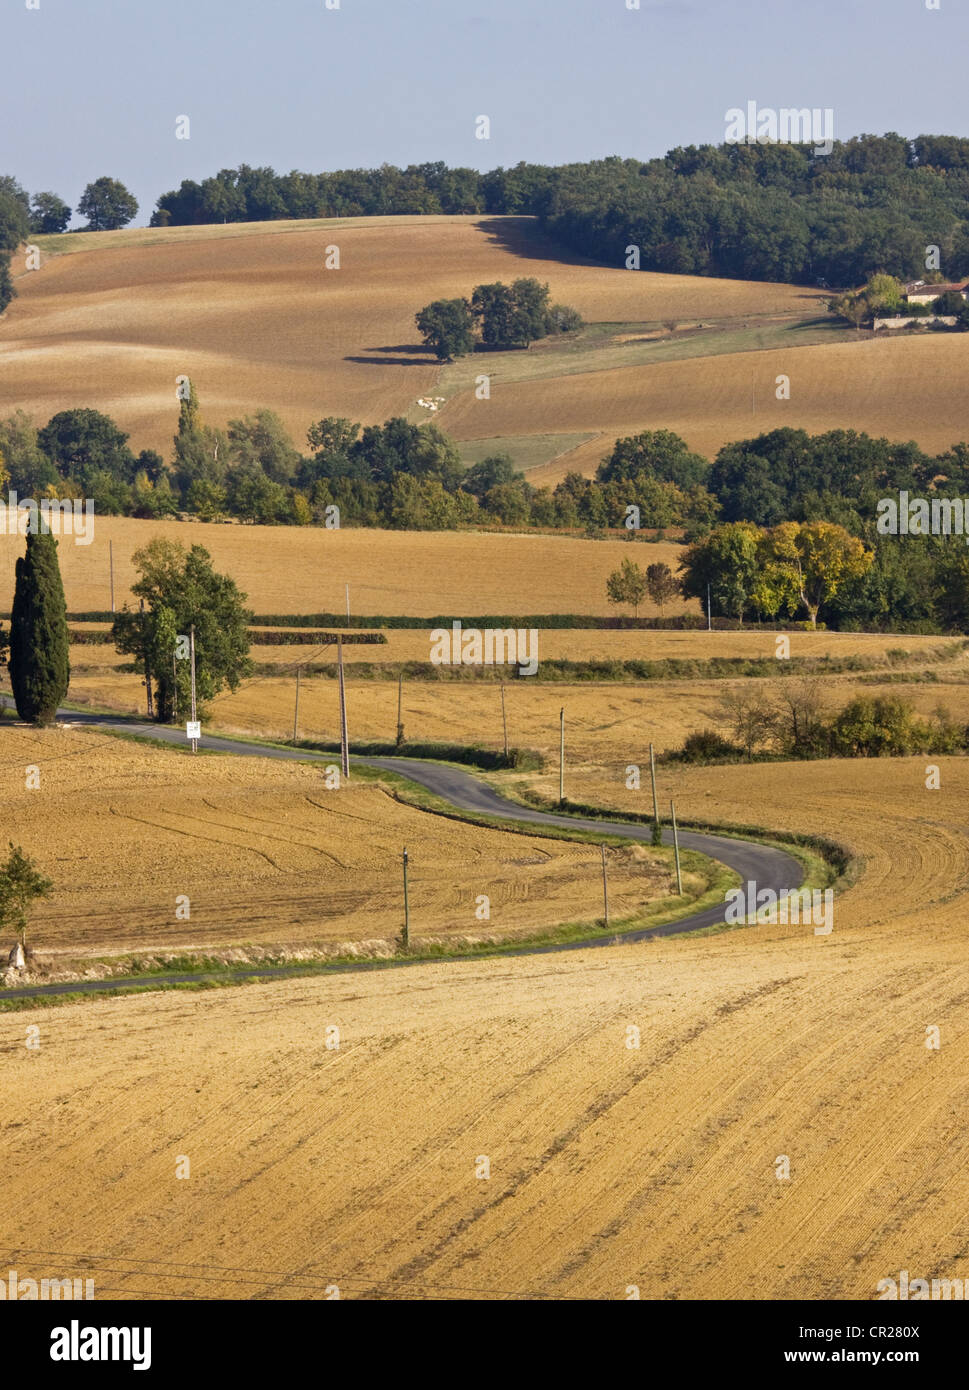 A minor rural road wending its way through a sparsely populated farming landscape in SW France in early autumn - Stock Image